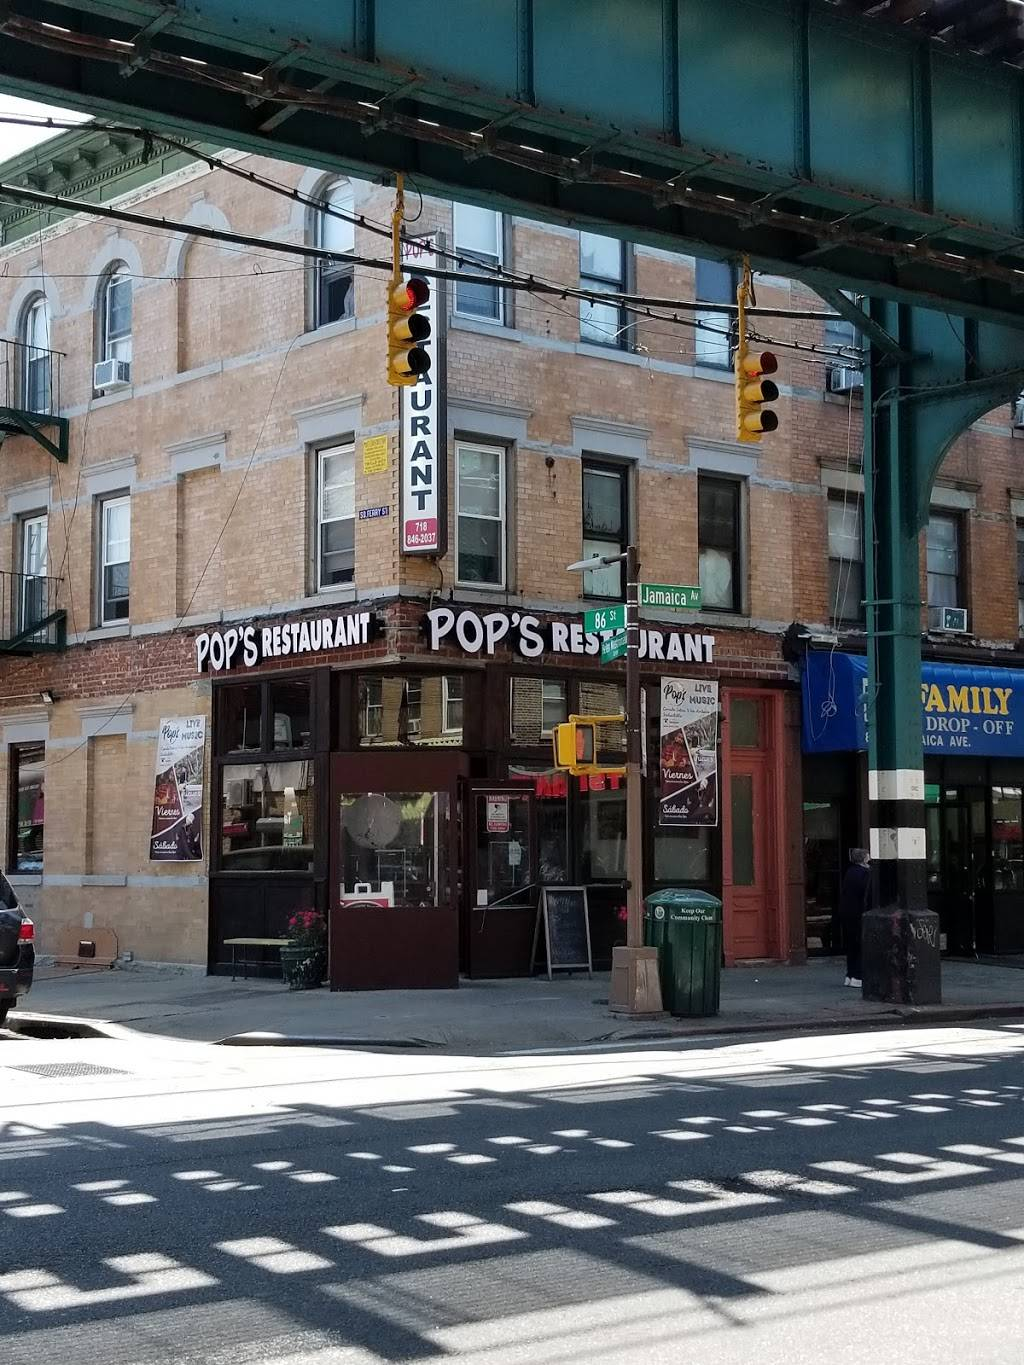 Pops Cocina & Bar   restaurant   8522 Jamaica Ave, Woodhaven, NY 11421, USA   7188462037 OR +1 718-846-2037